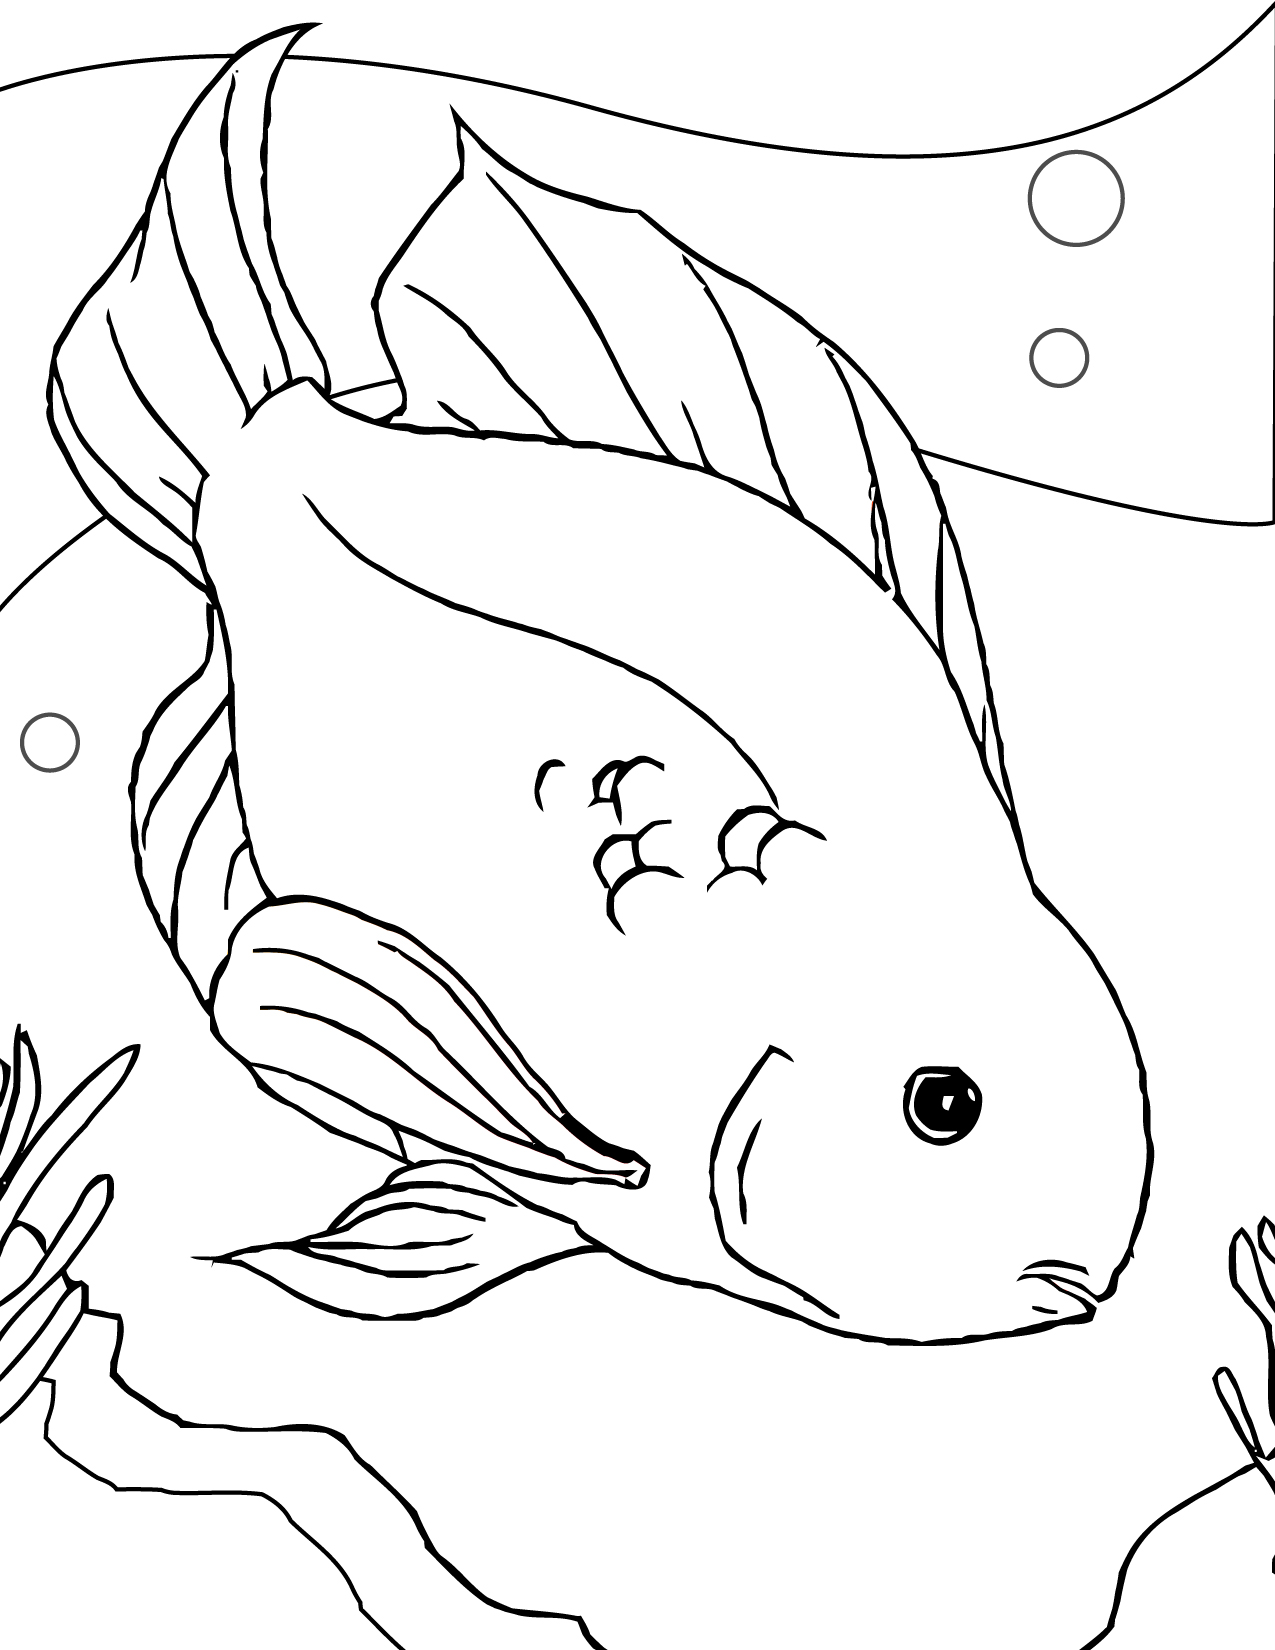 Blood Parrot Coloring Page - Handipoints